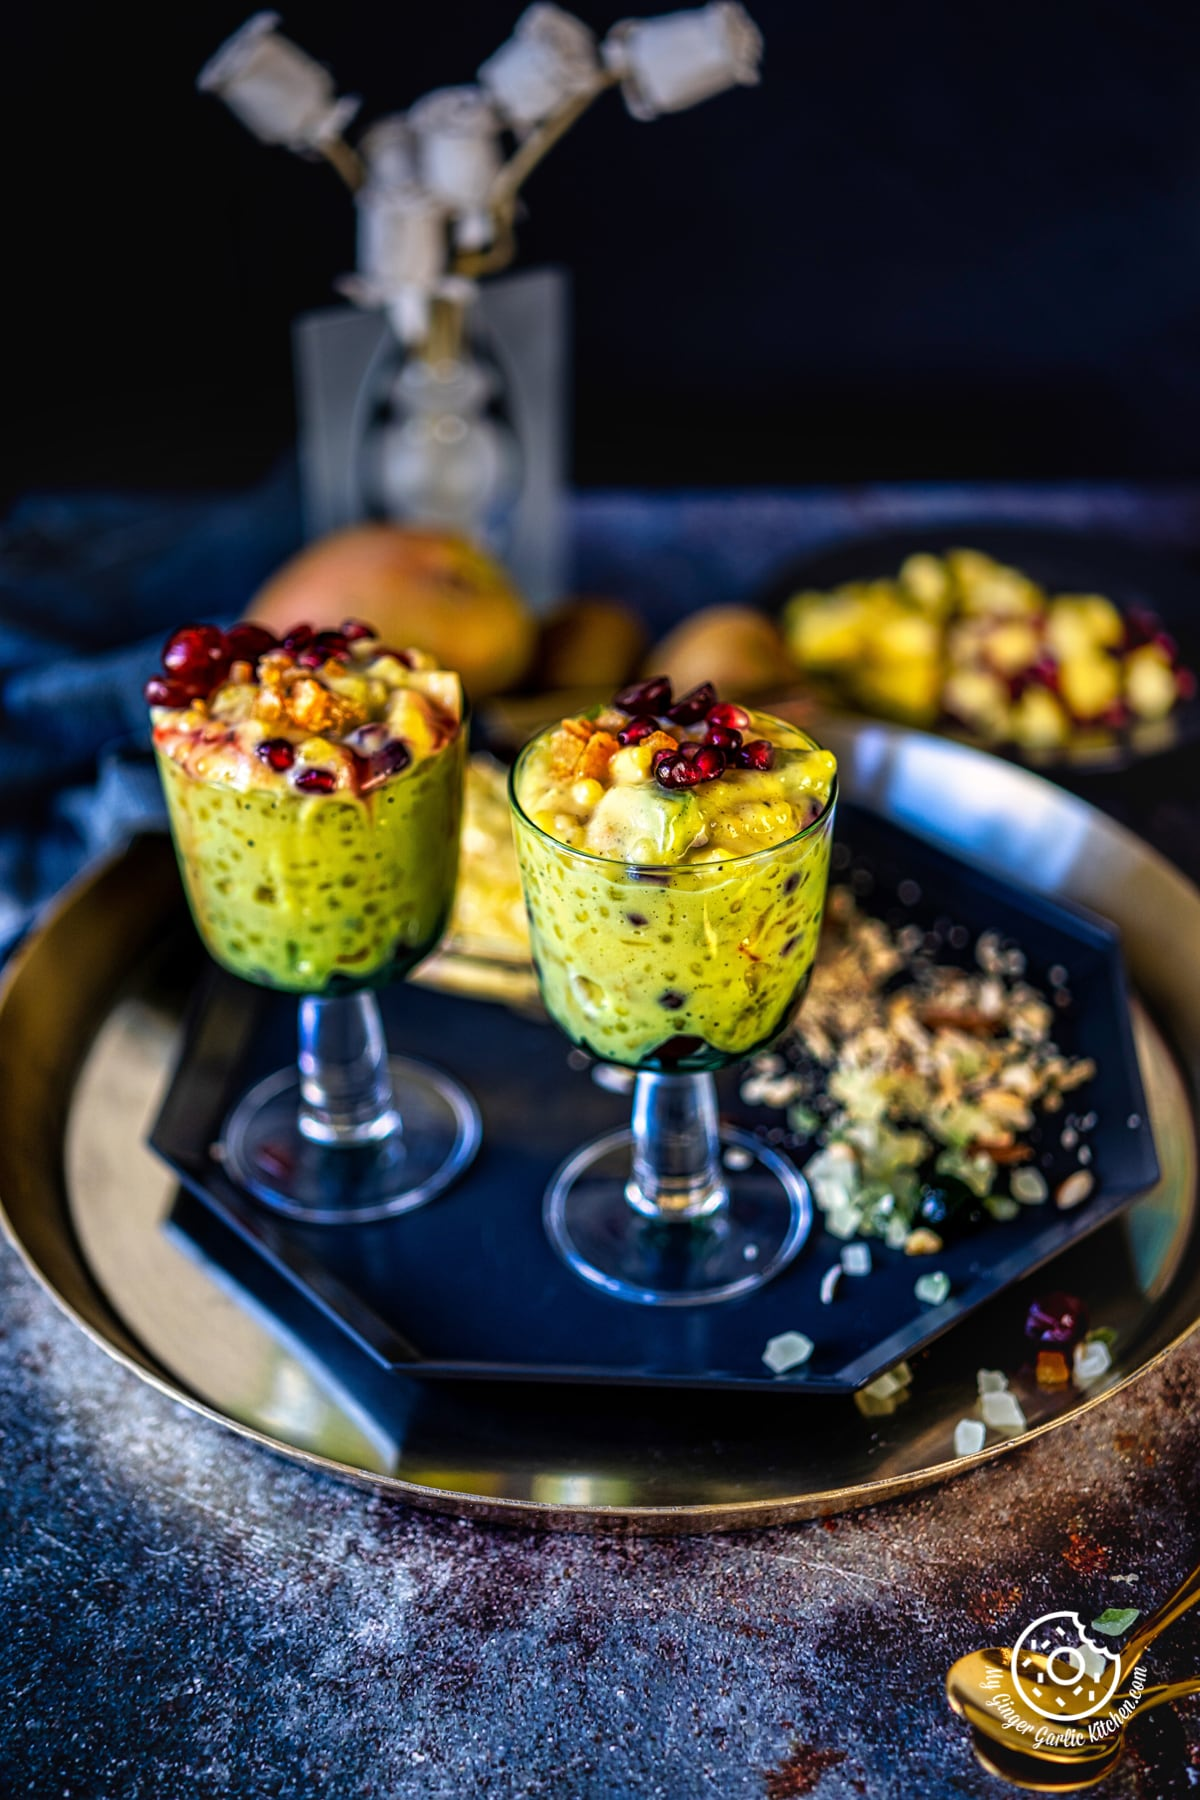 two sago fruit custard glasses on a metal plate and some chopped nuts on the side